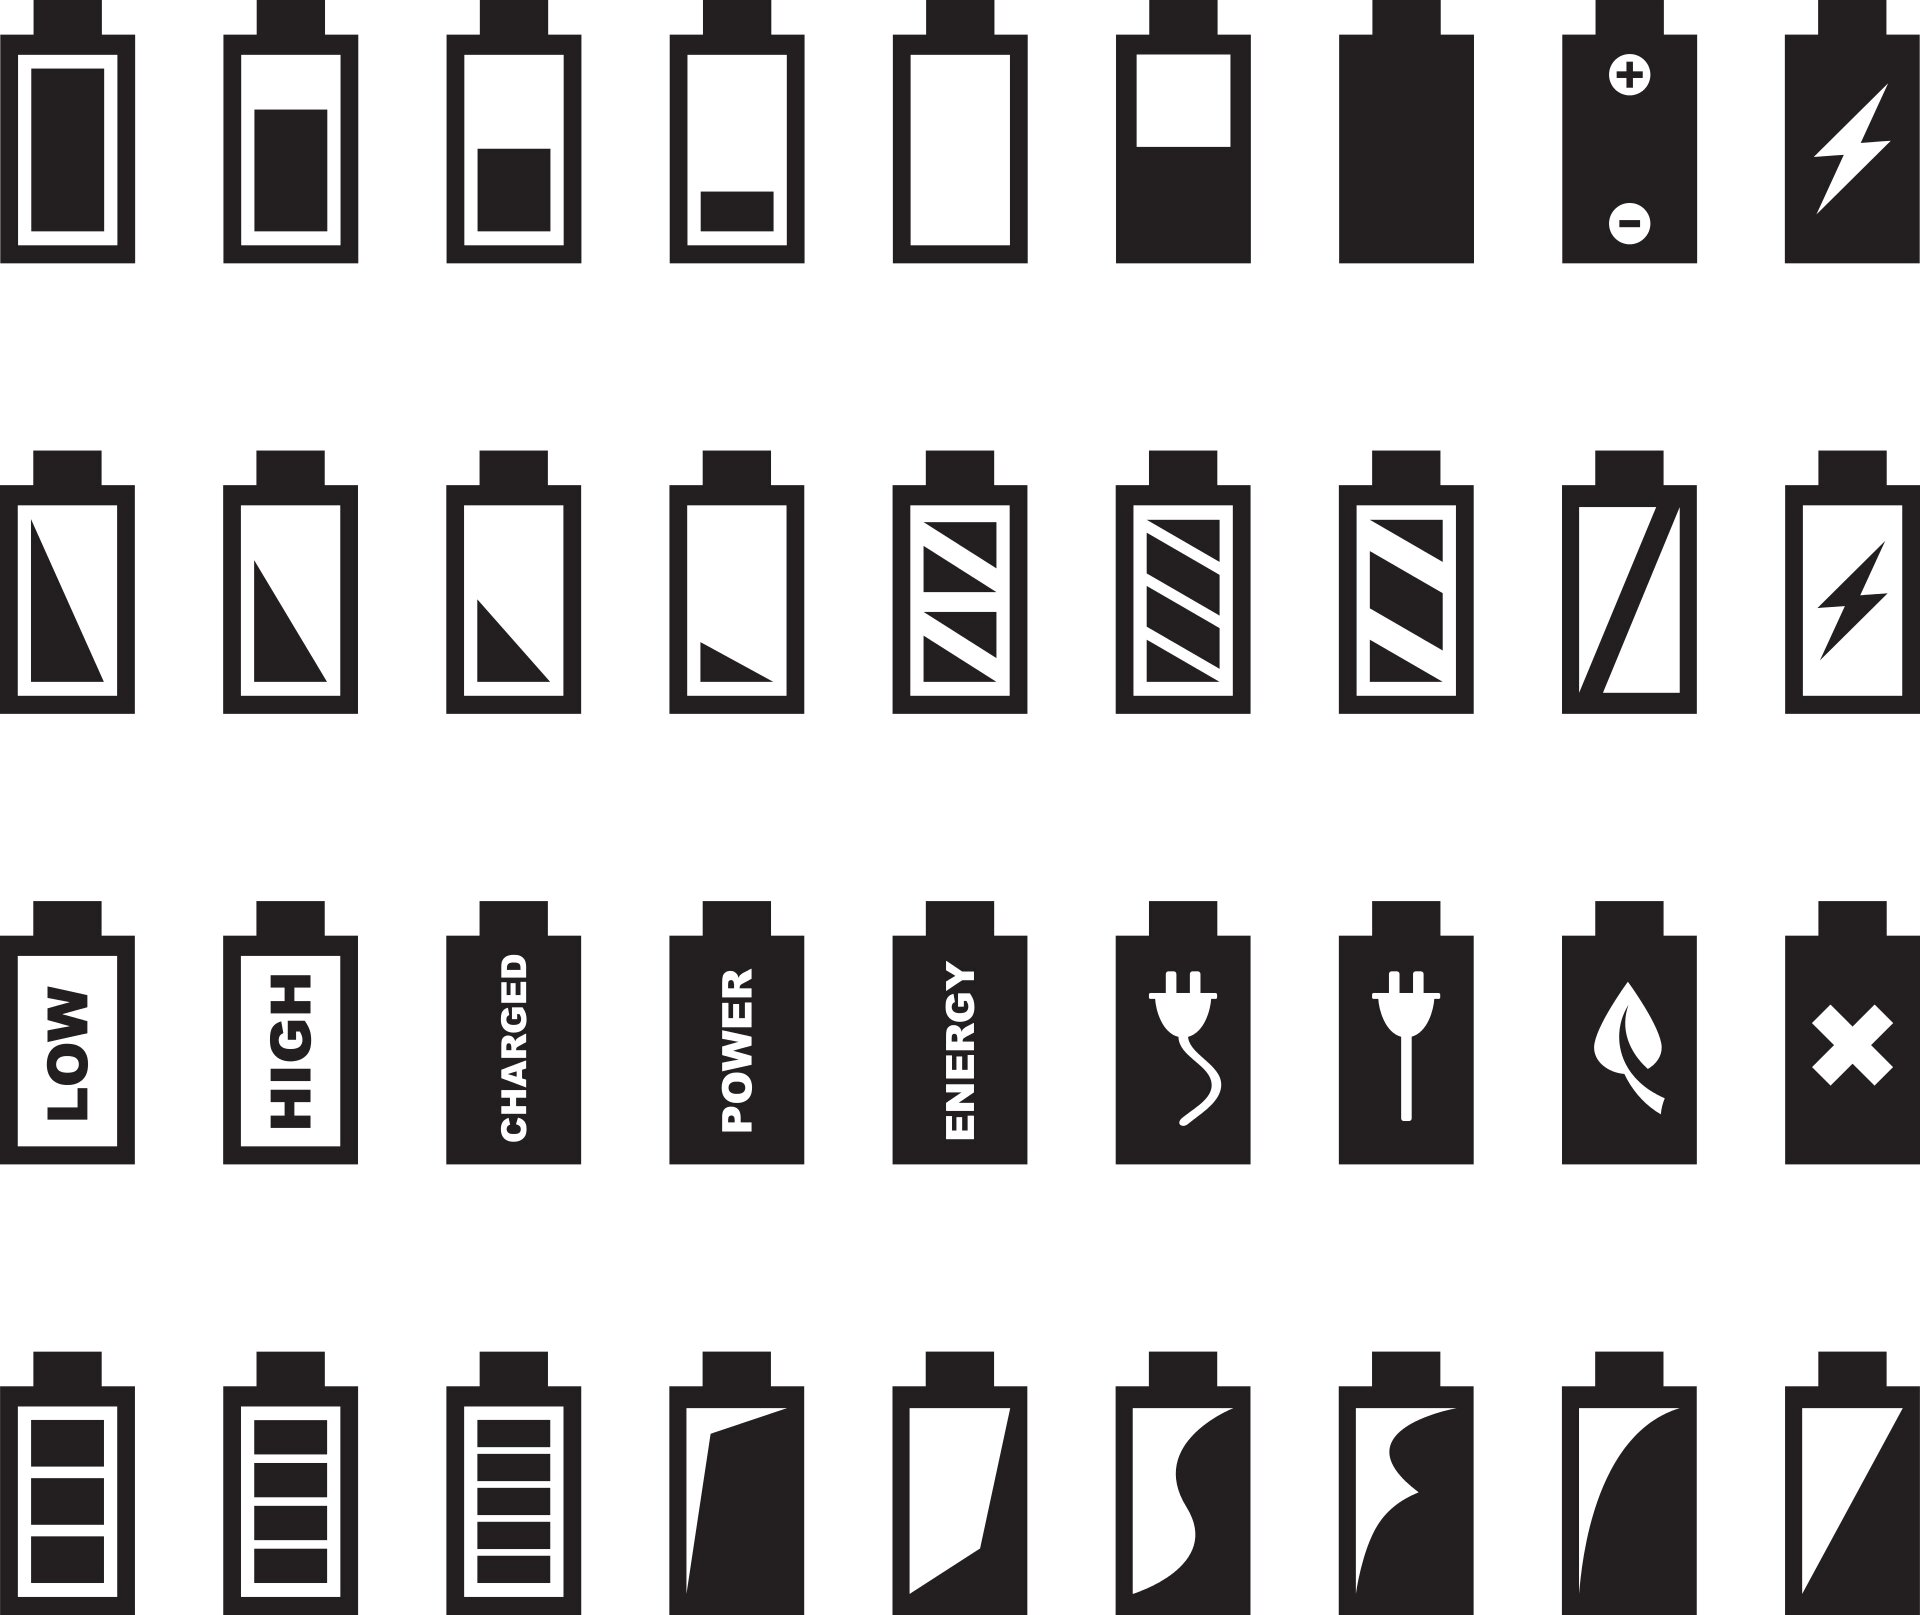 Battery Icons Shape Perceptions of Time and Space and Define User Identities